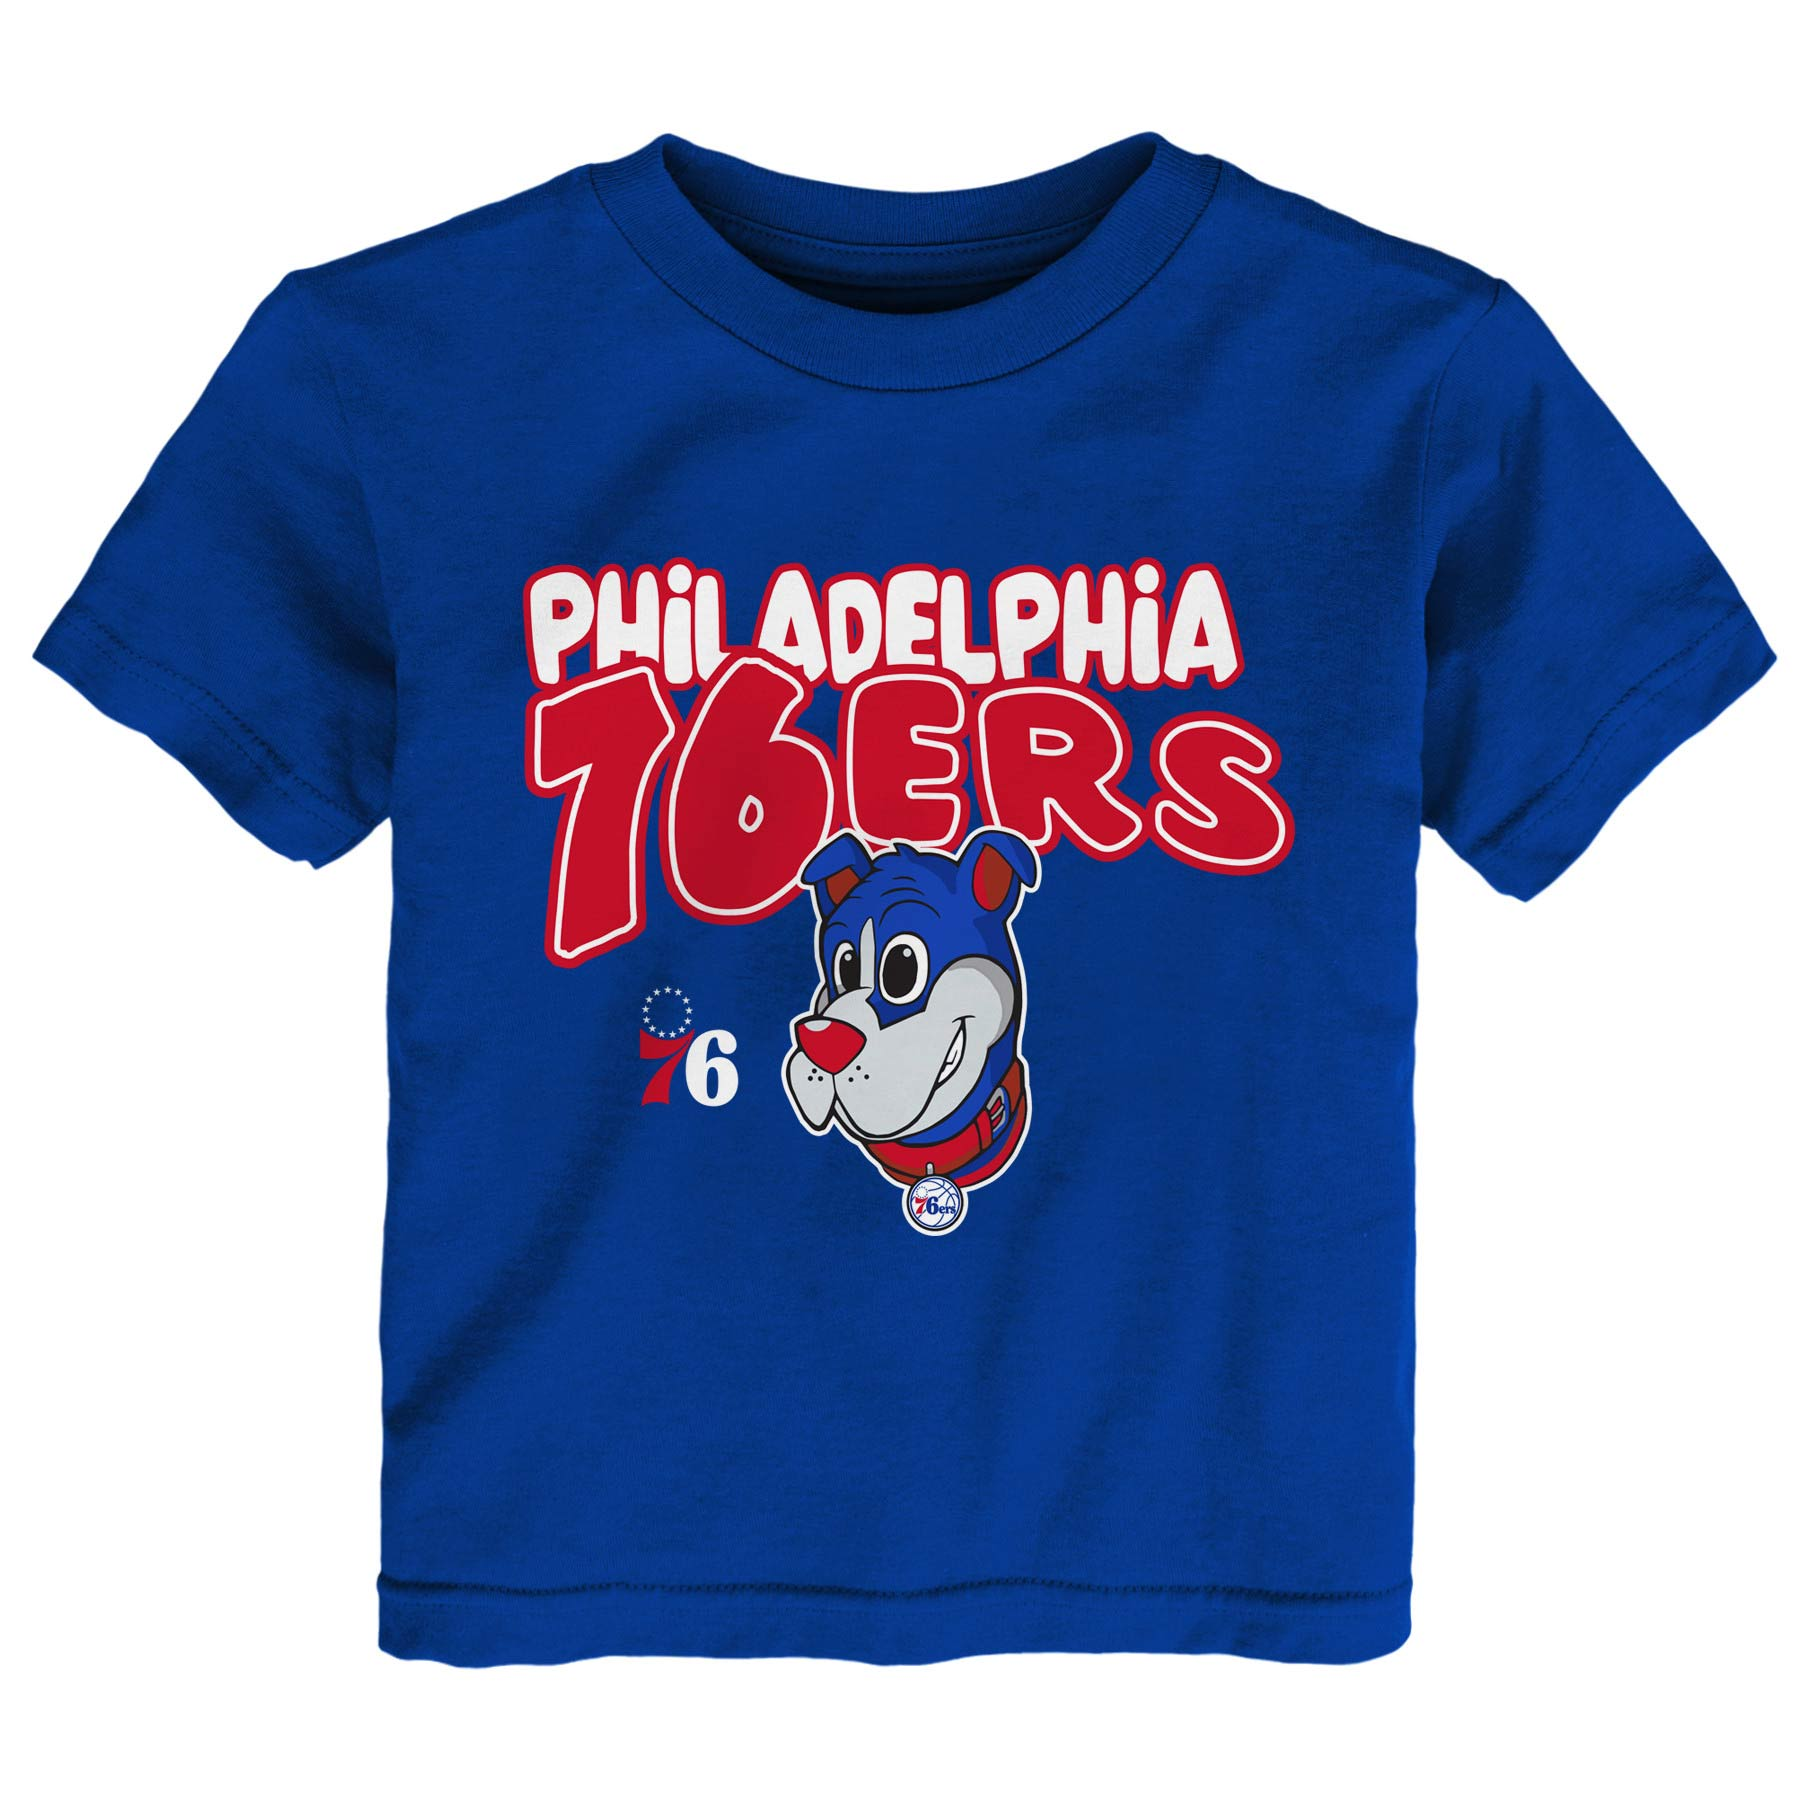 Philadelphia 76ers Preschool & Toddler Bubble Letter T-Shirt - Royal